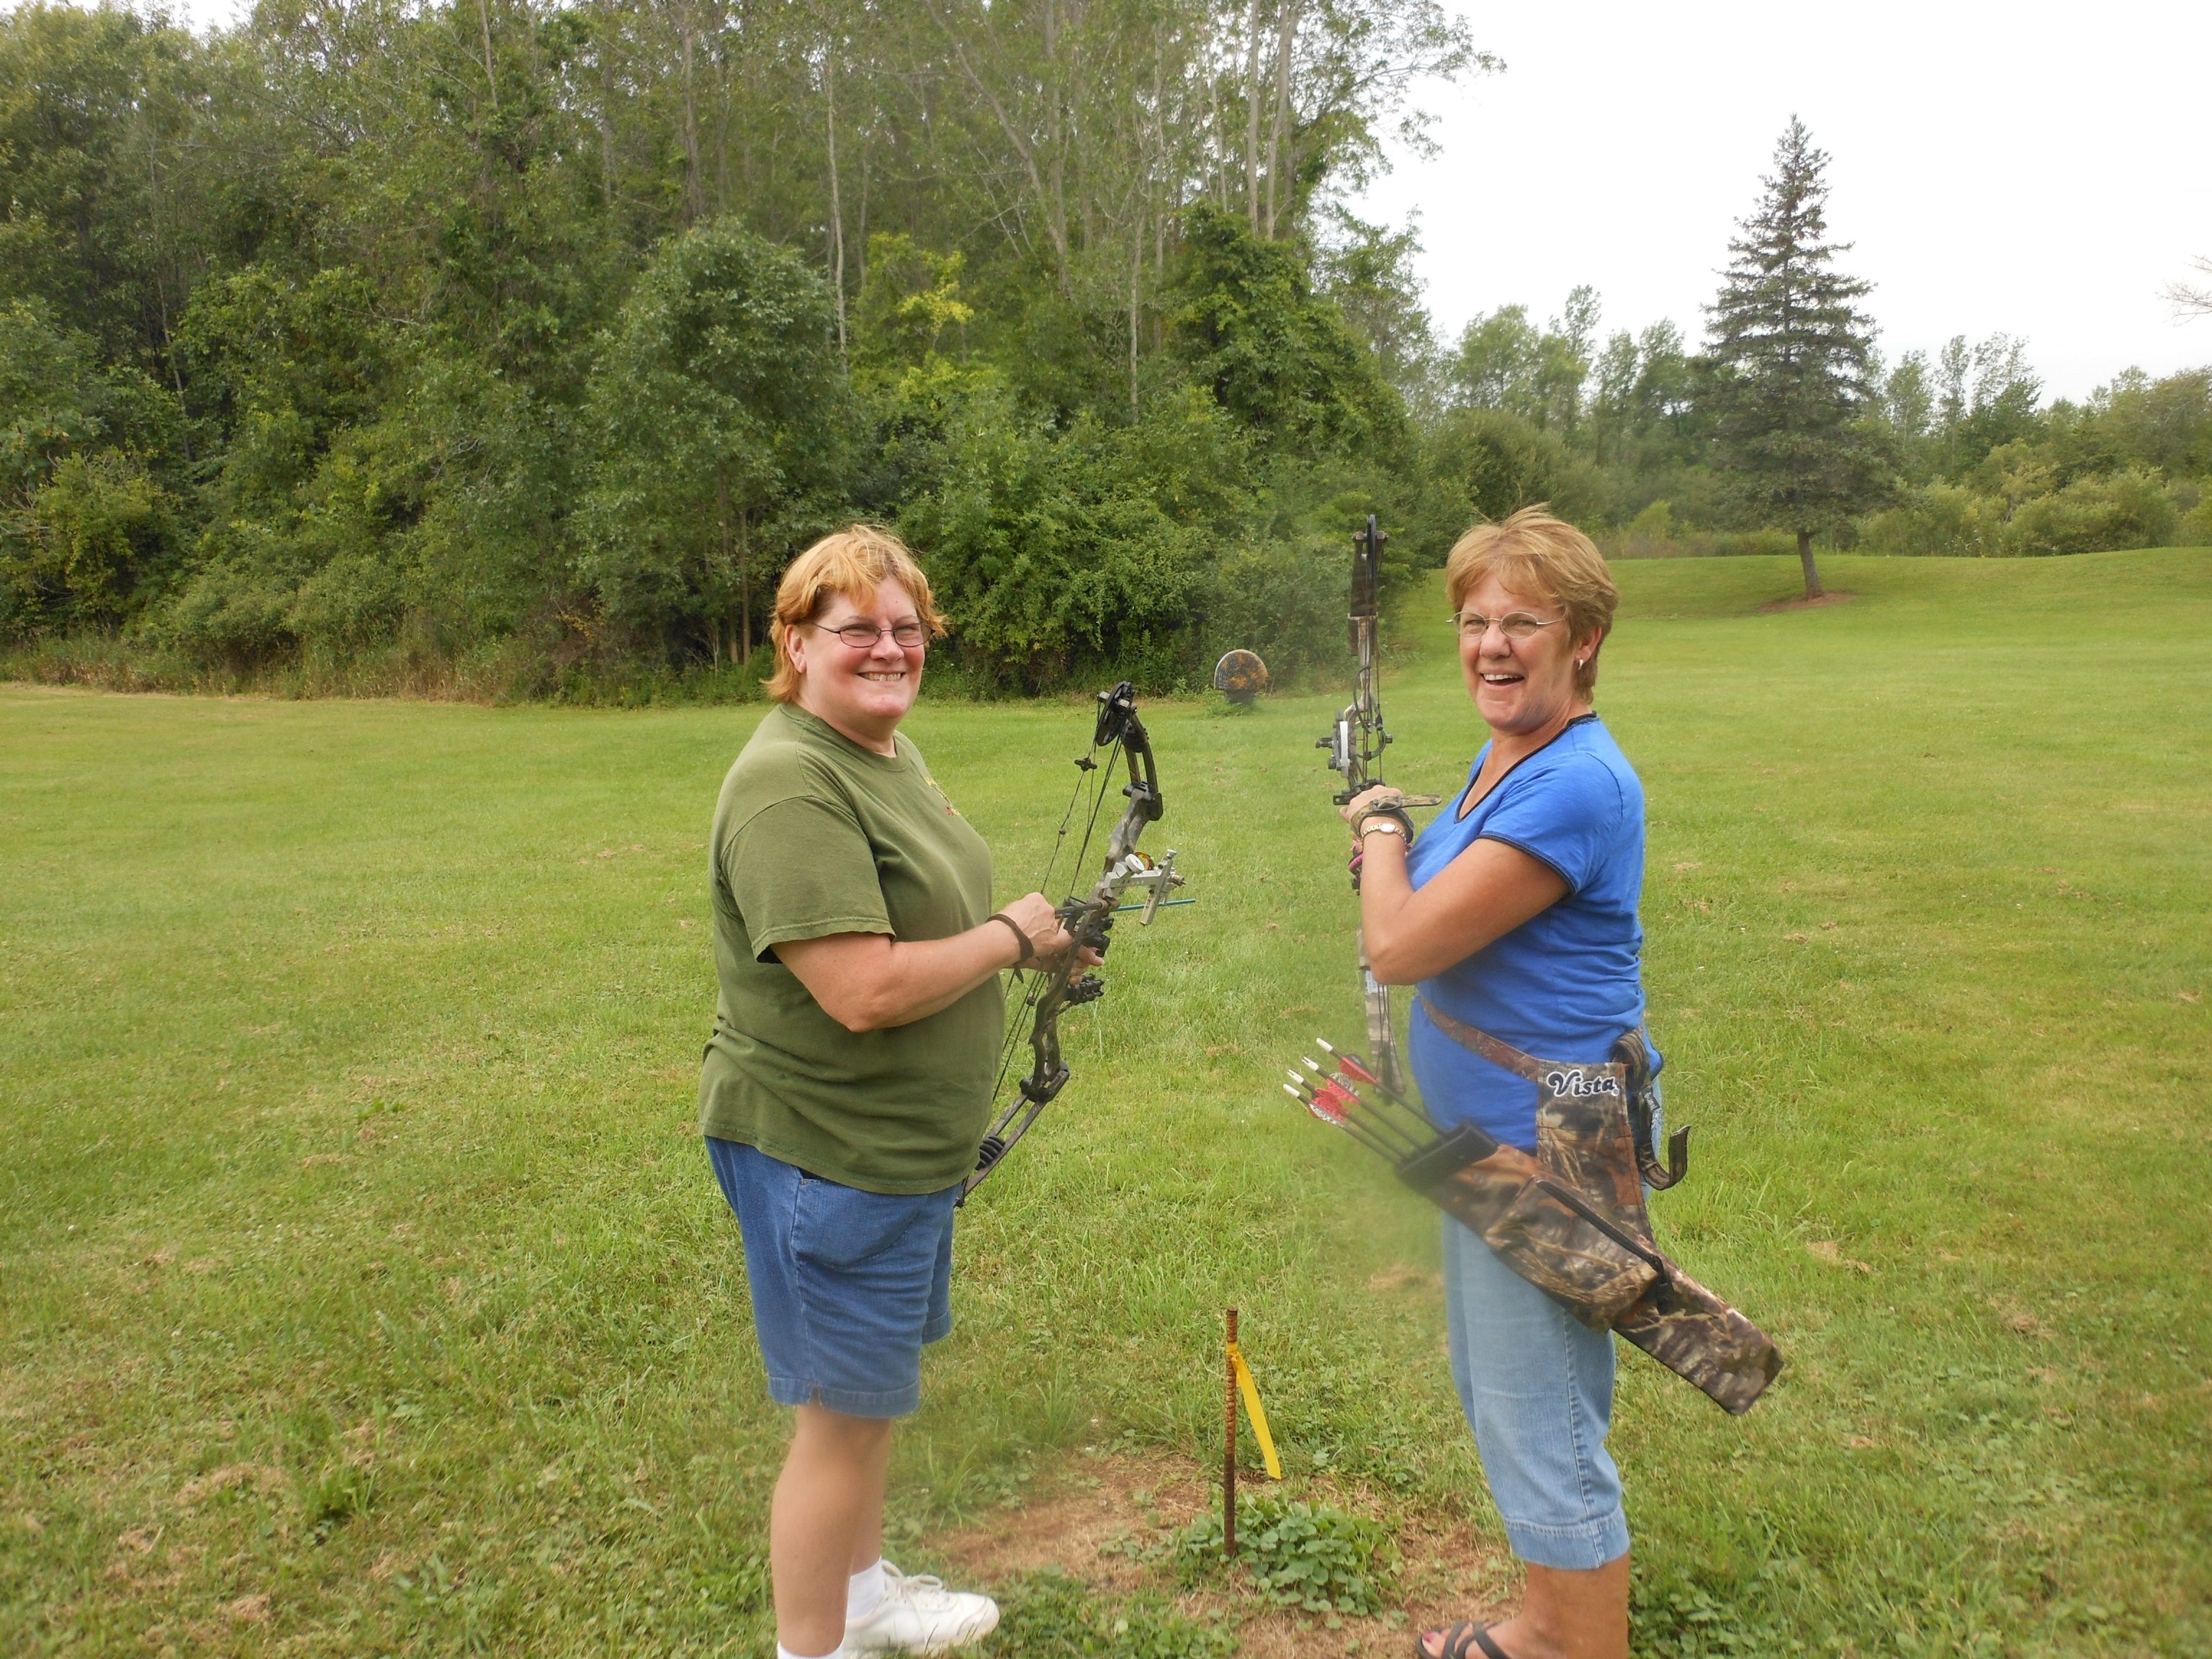 Judy Schmitt and Marge Baker finished the summer league with some impressive turkey- and bear-target shooting.